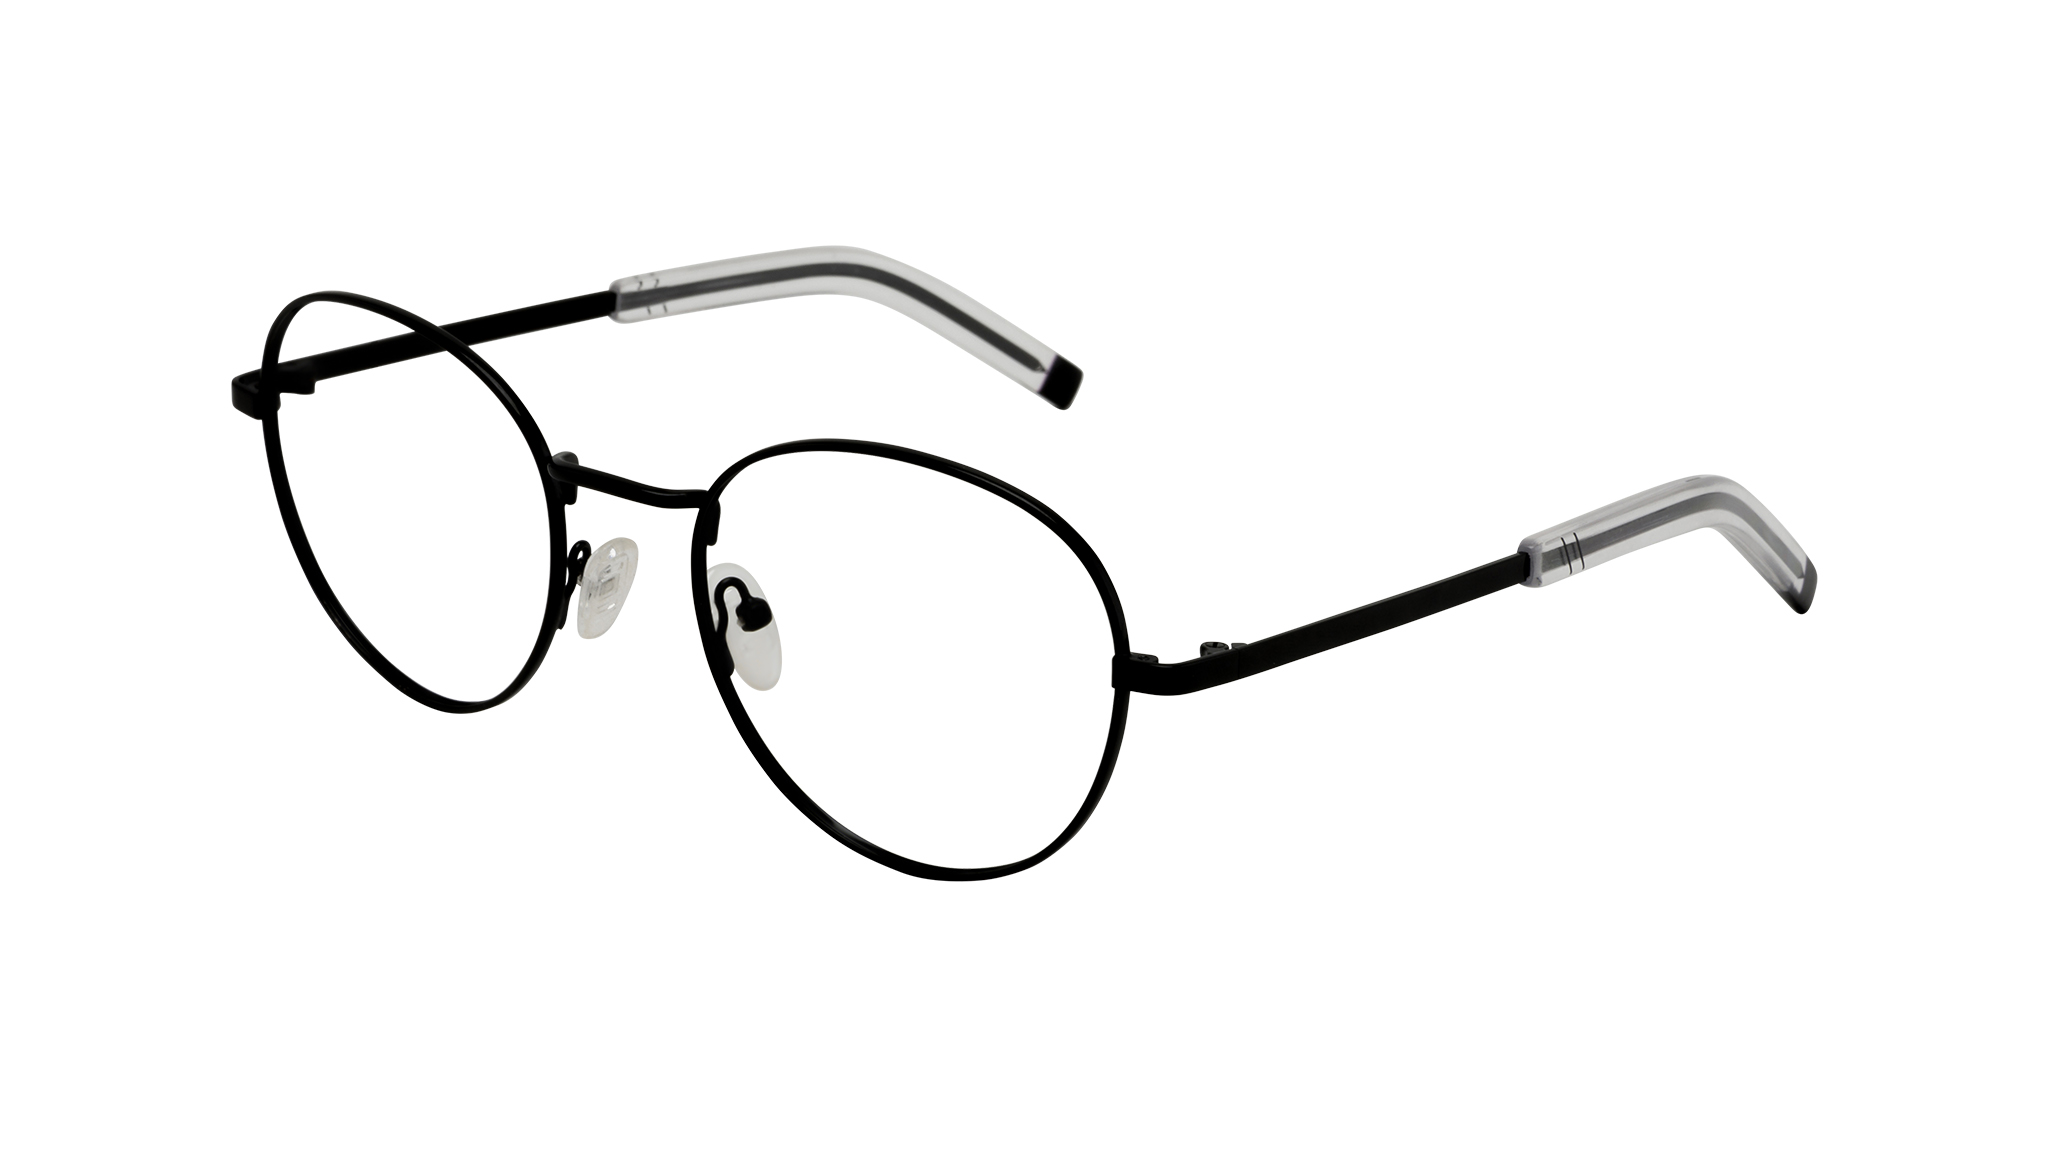 8f29ef38f0ce Affordable fashion glasses round eyeglasses men lean black tilt jpg  1600x707 Mlg glasses tilted